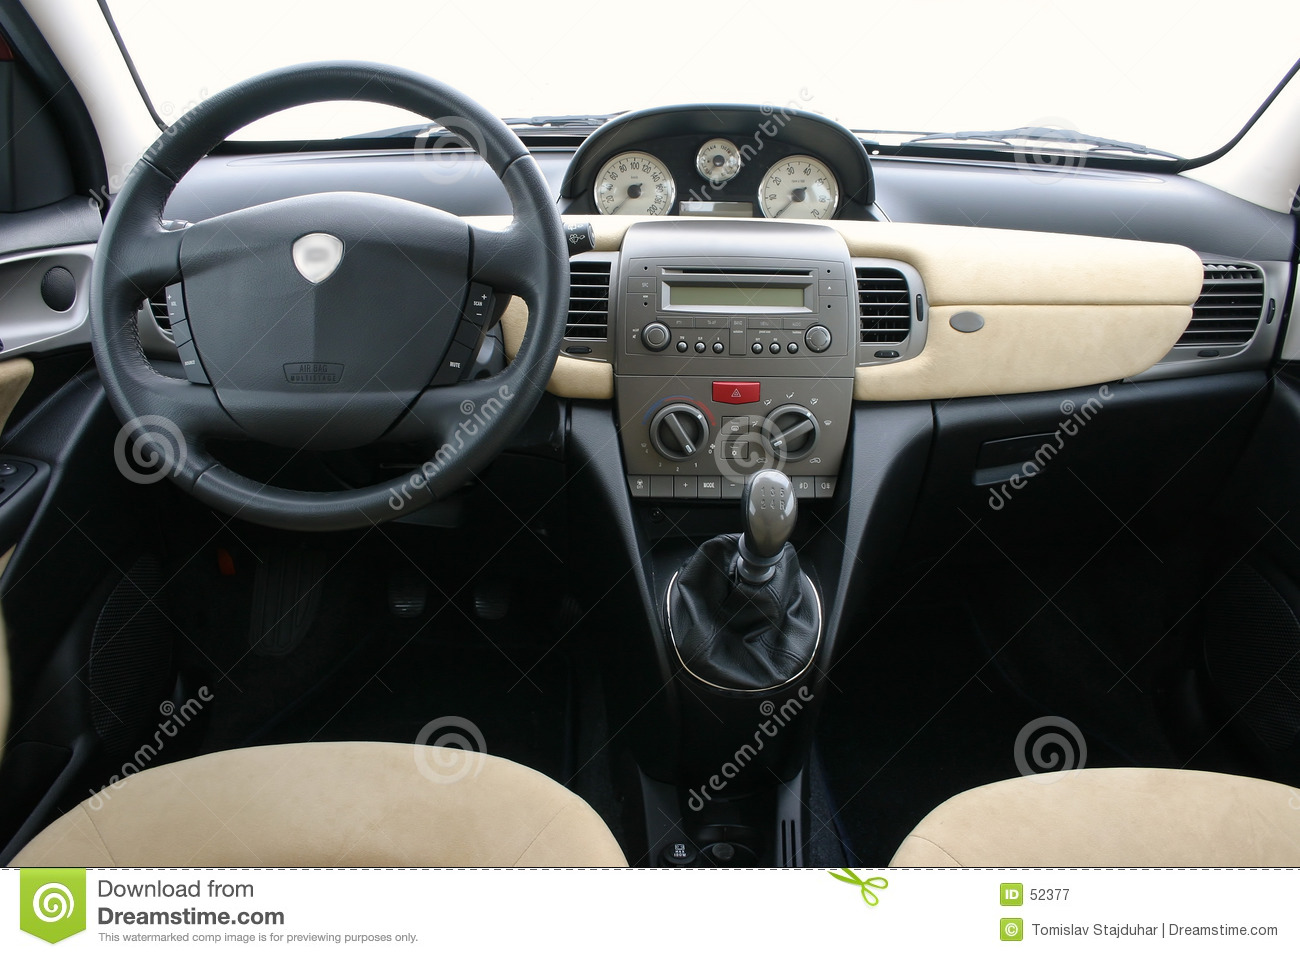 Live Architecture Amet School further 2010 Bmw M6 Interior in addition Engine Heater together with Transparent Ford Symbol together with 219. on car interior diagram